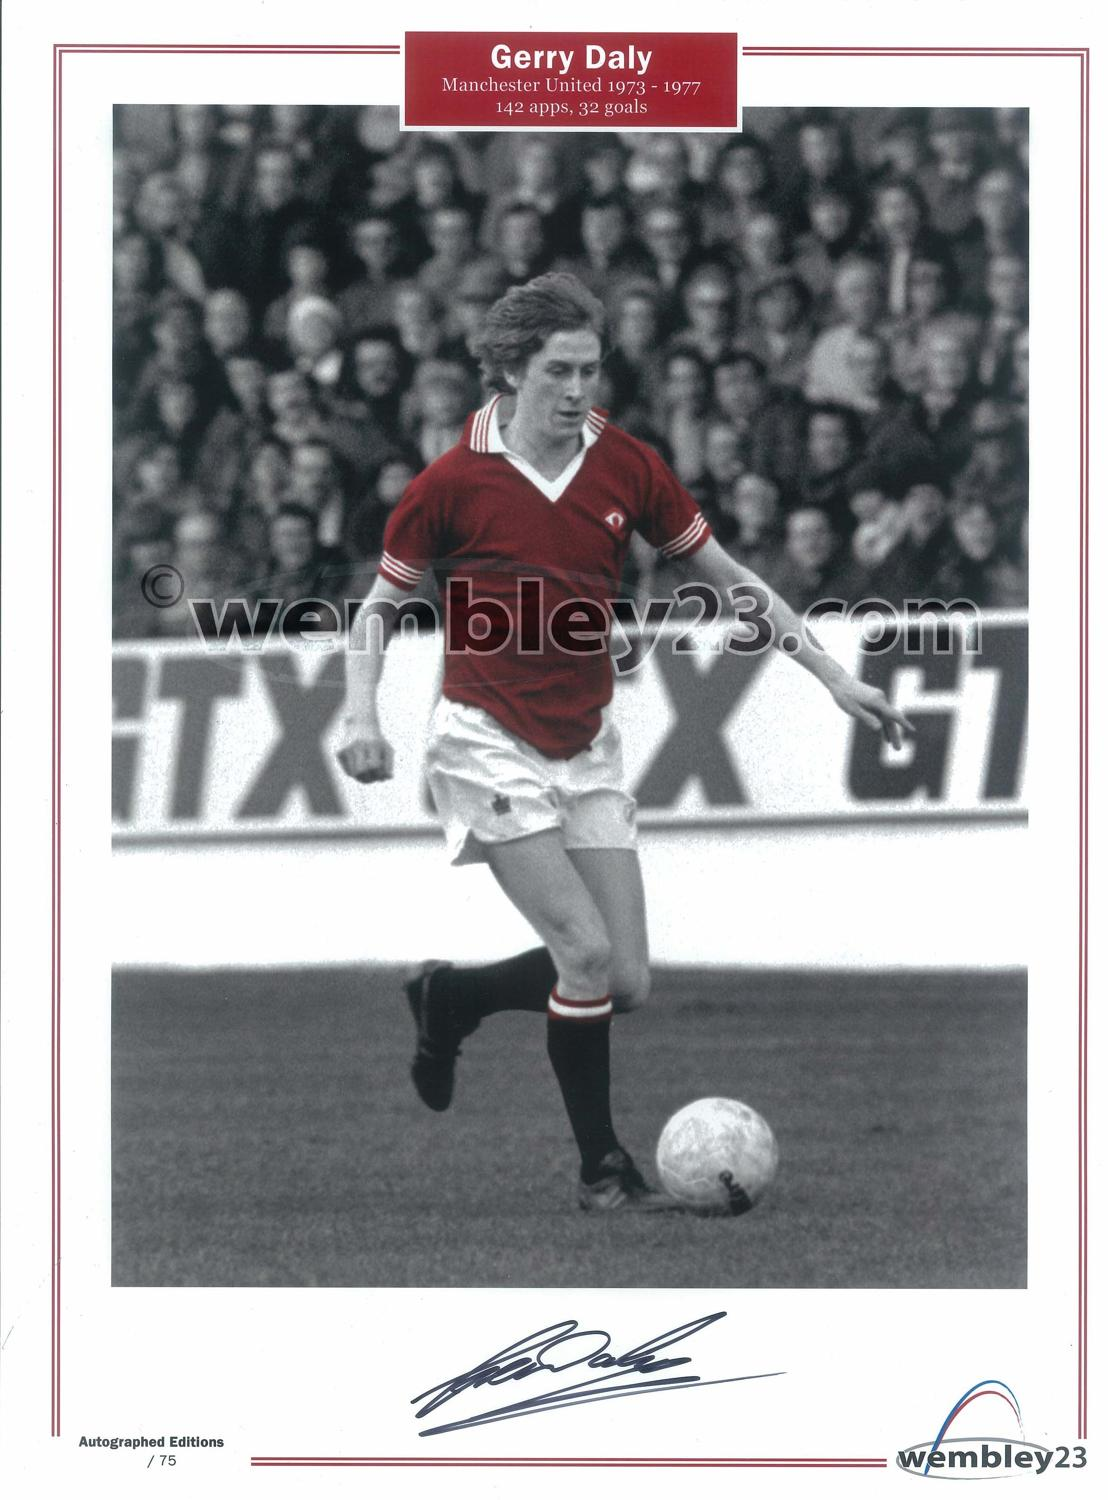 Gerry Dally Manchester United